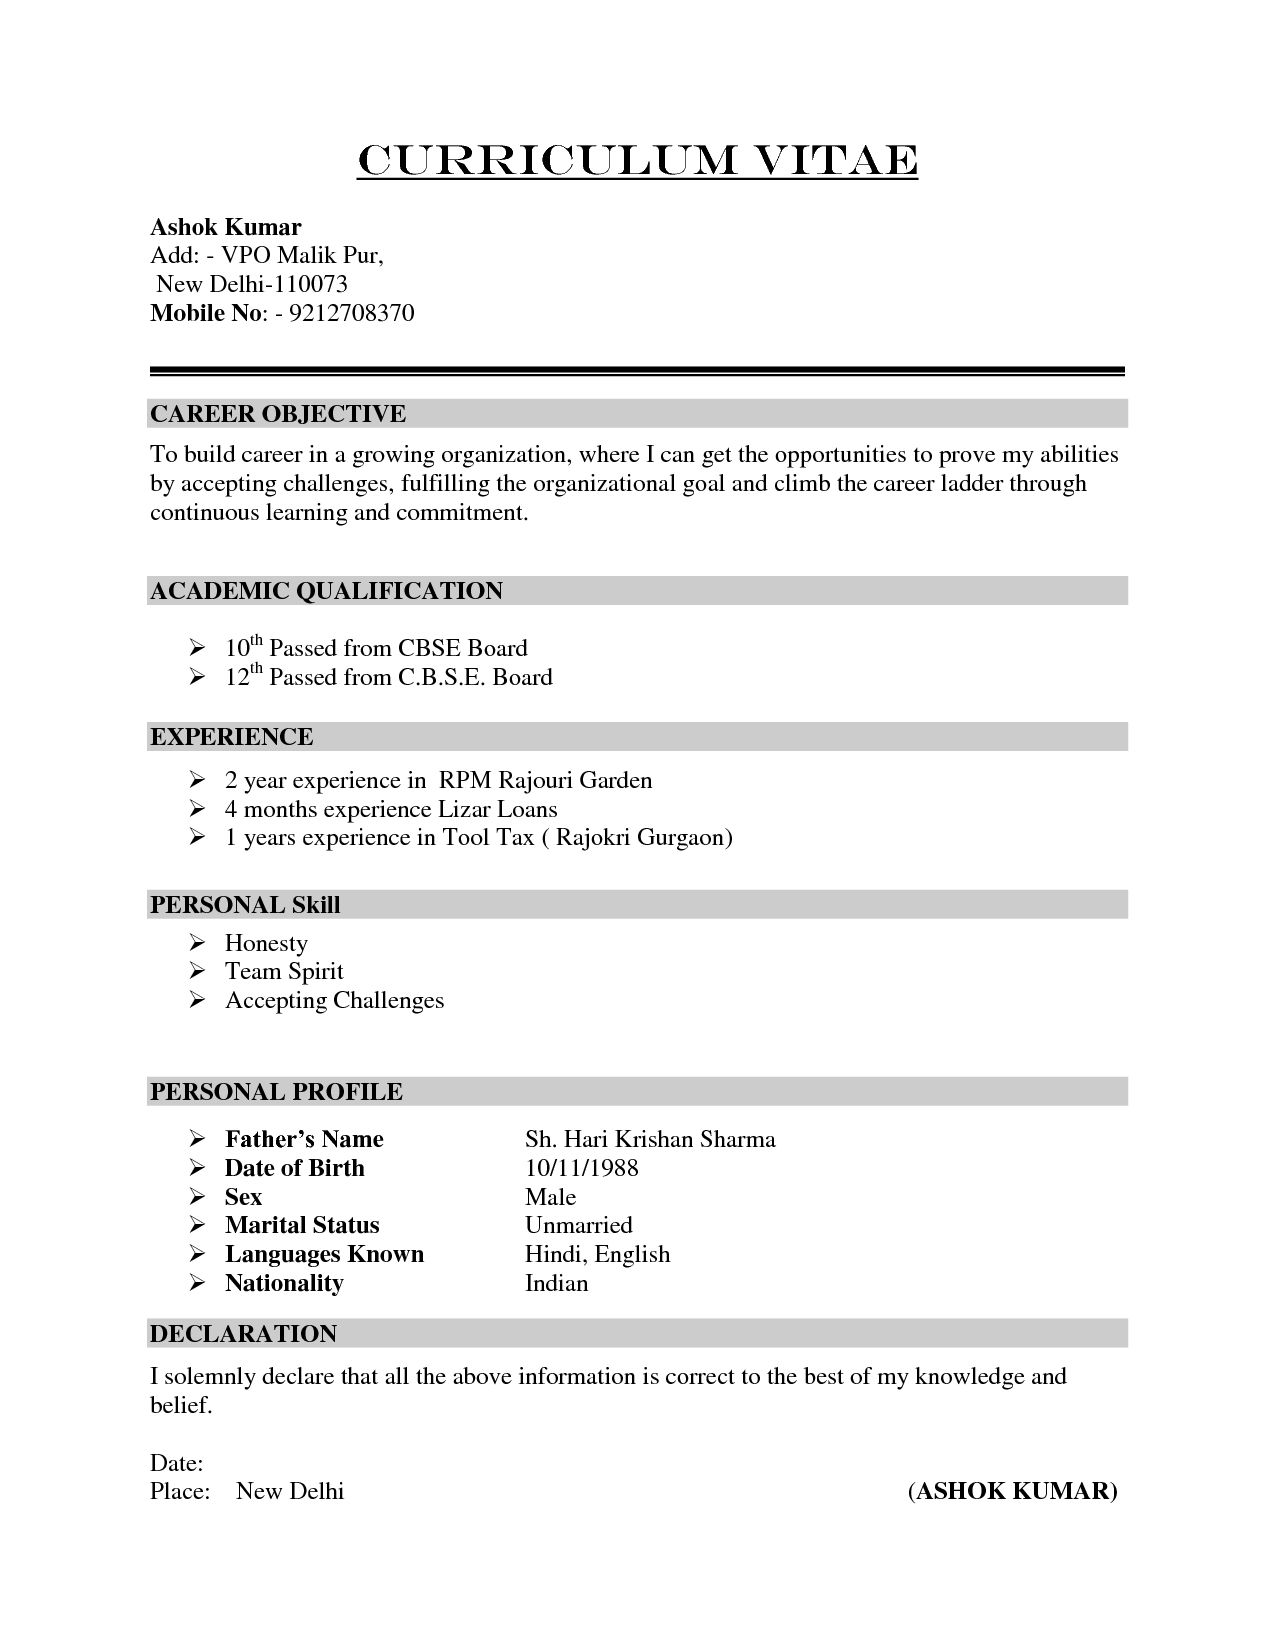 Cv Template Vs Resume Cv resume sample, Basic resume